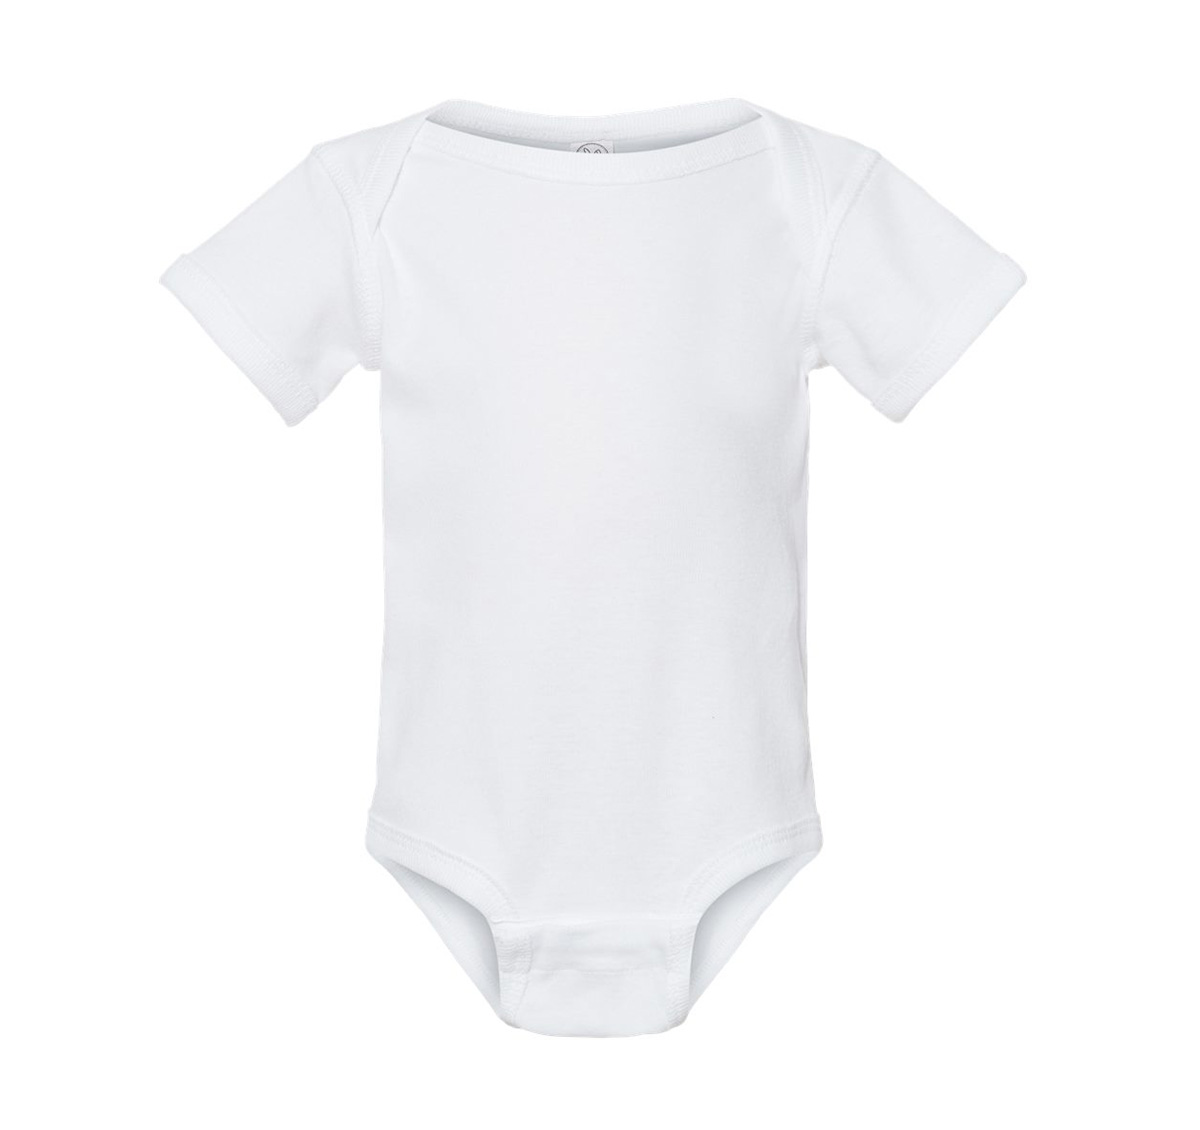 0da0c34f Custom Onesies & Toddler Shirts: Fast Shipping. No Minimums.